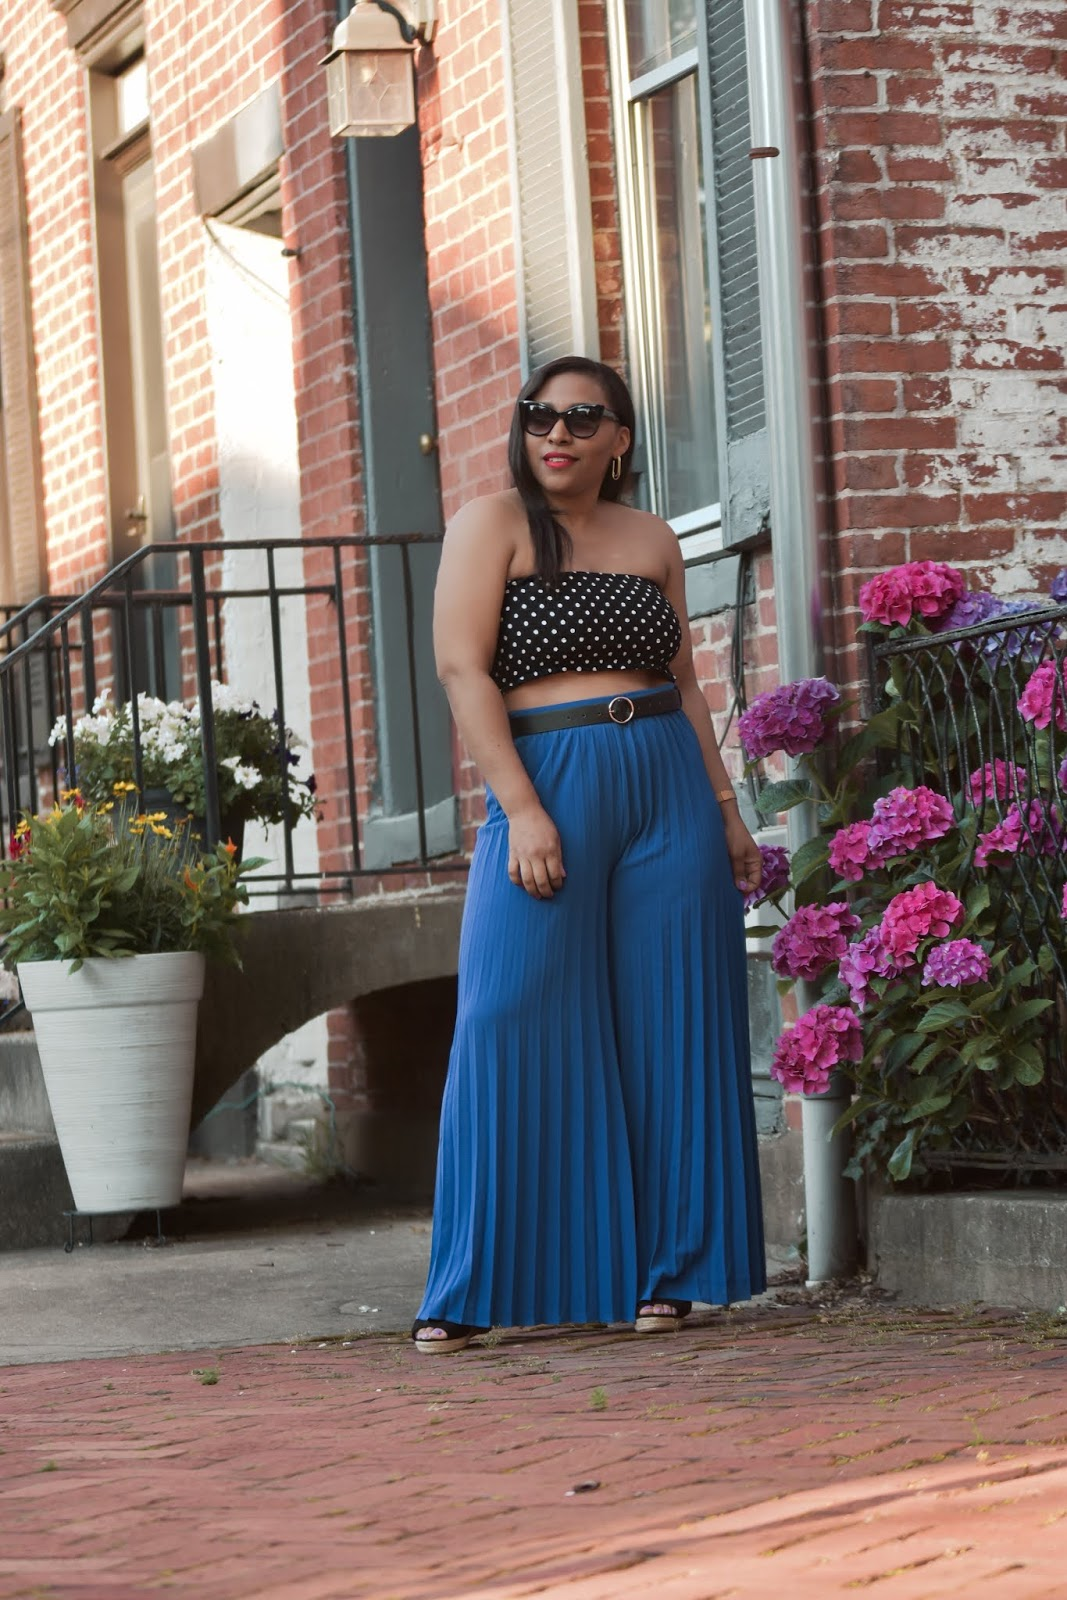 pattys kloset, shein, shein reviews, how to style pleated pants, pleated pants outfit ideas, summer outfit ideas, chic summer outfits